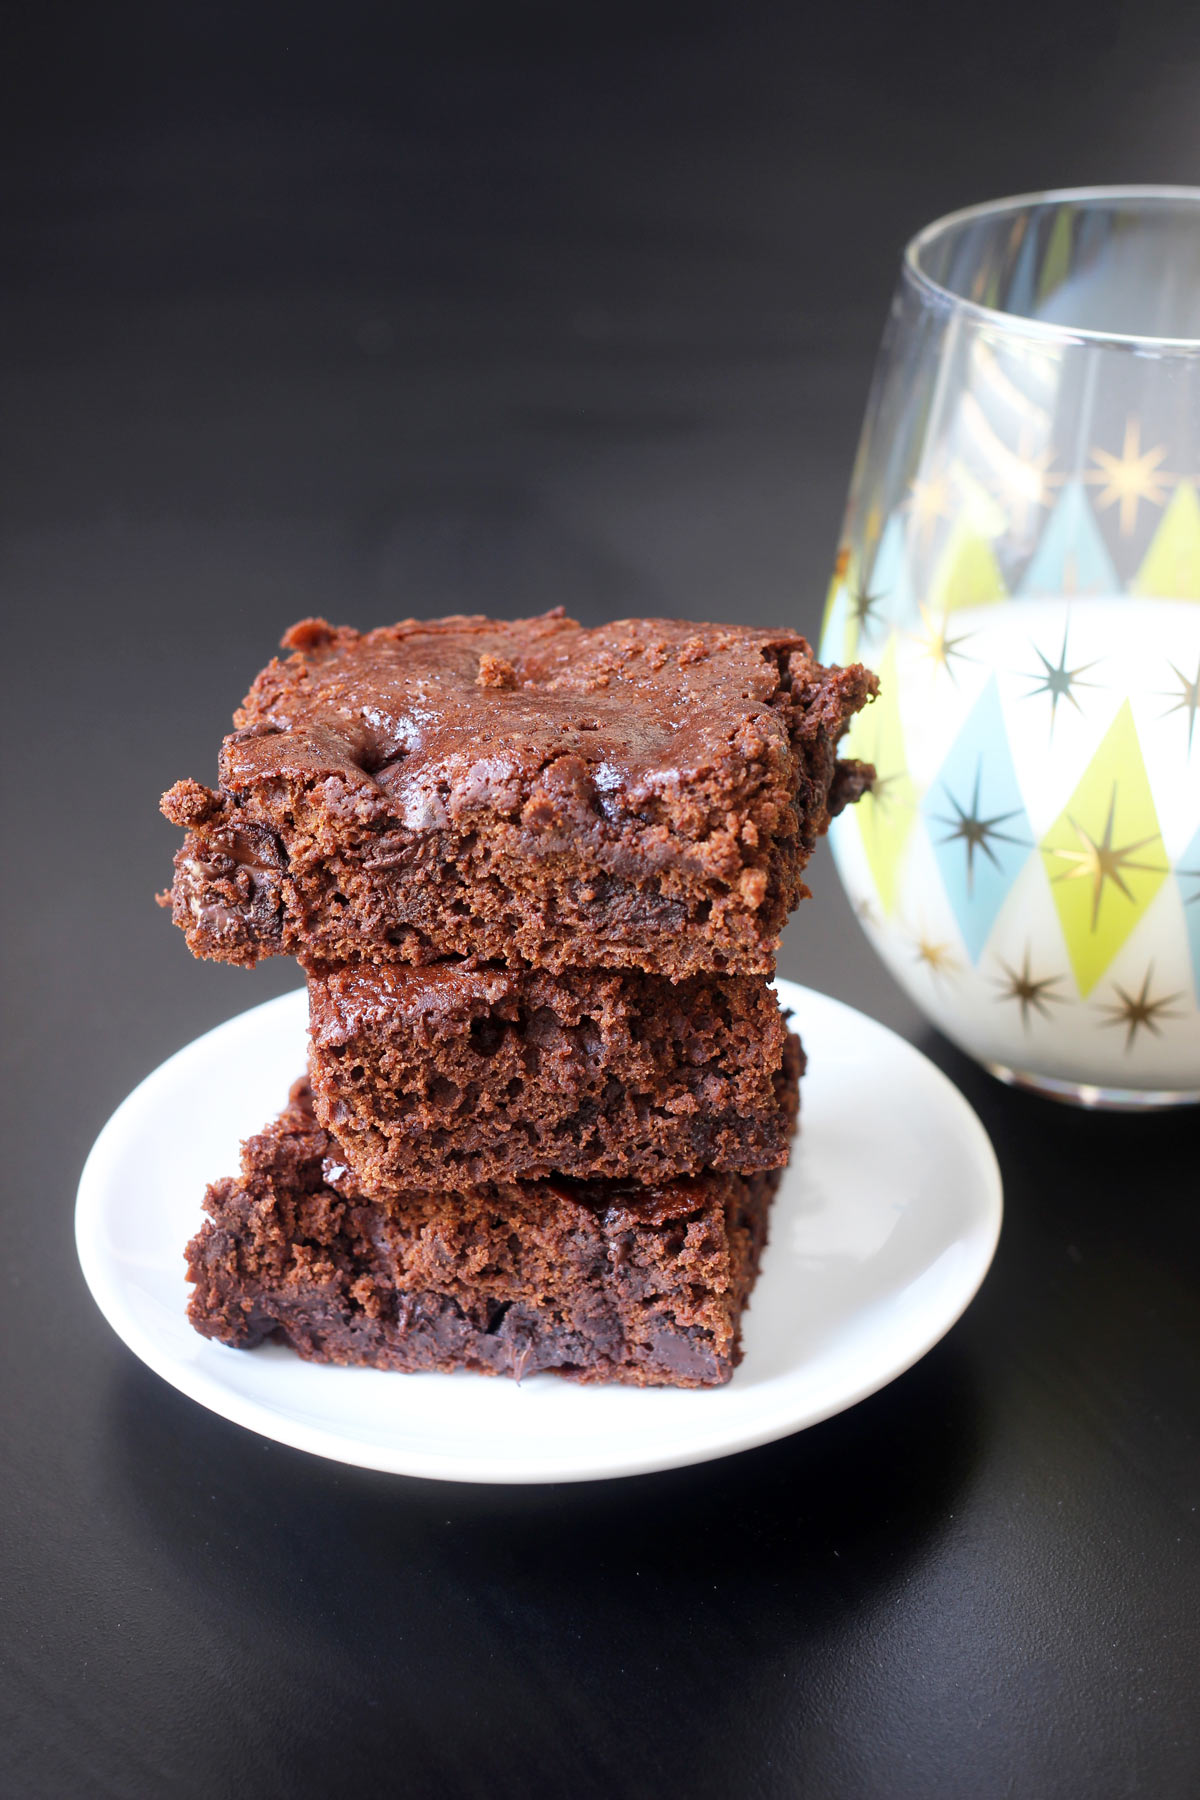 brownies stacked on small white plate next to glass of milk.